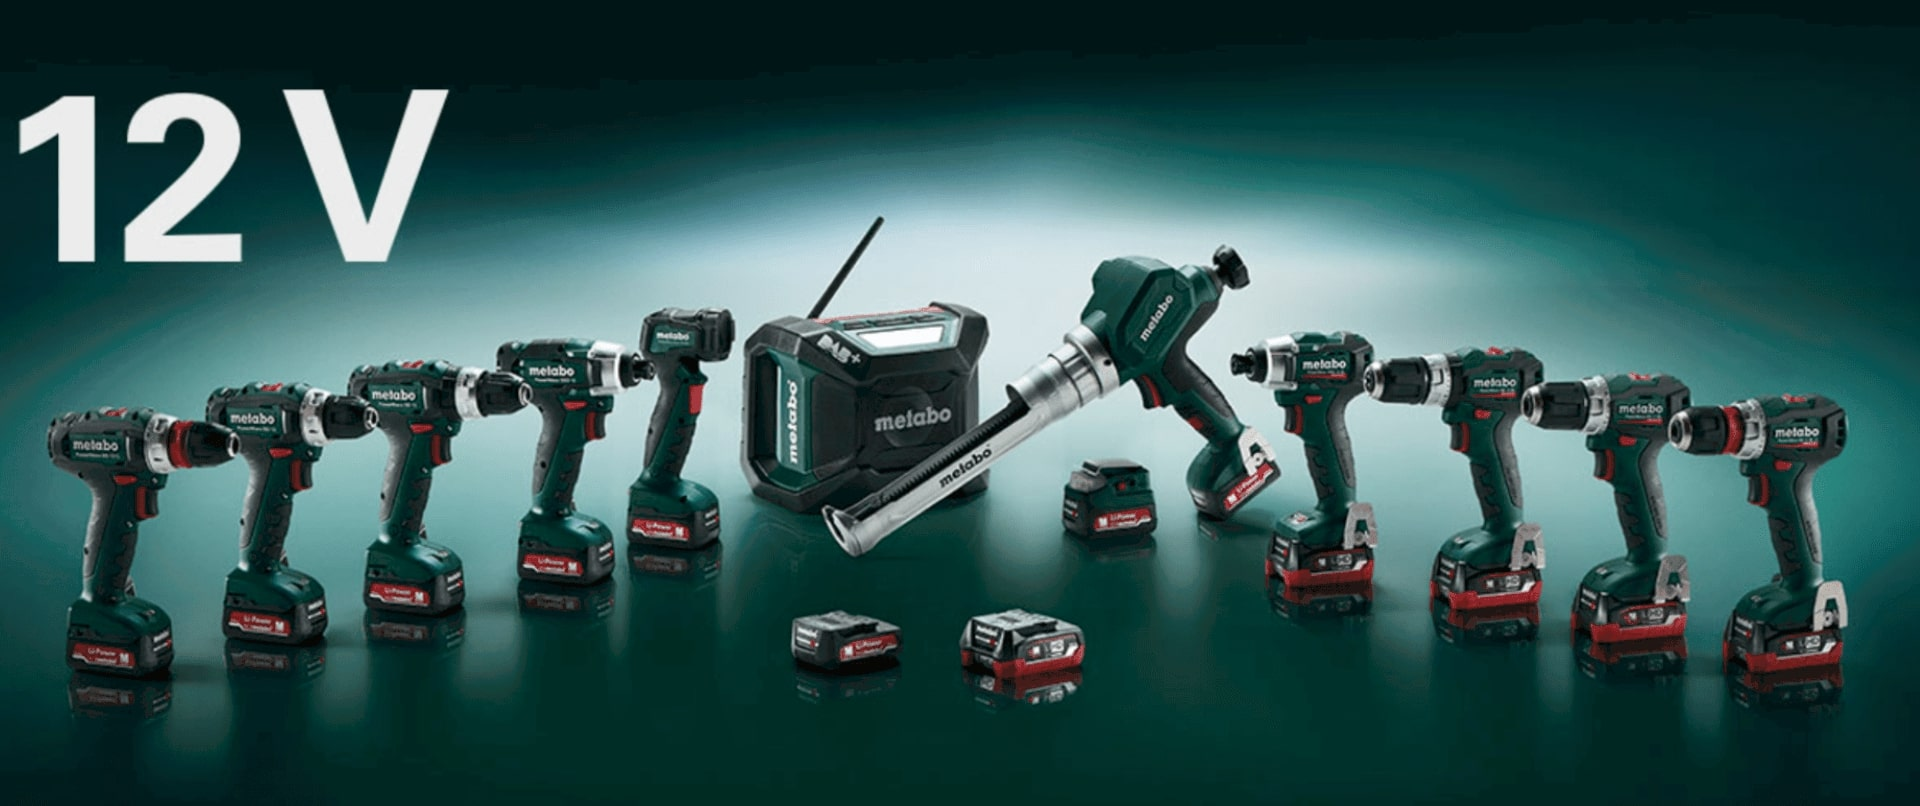 Metabo Drills